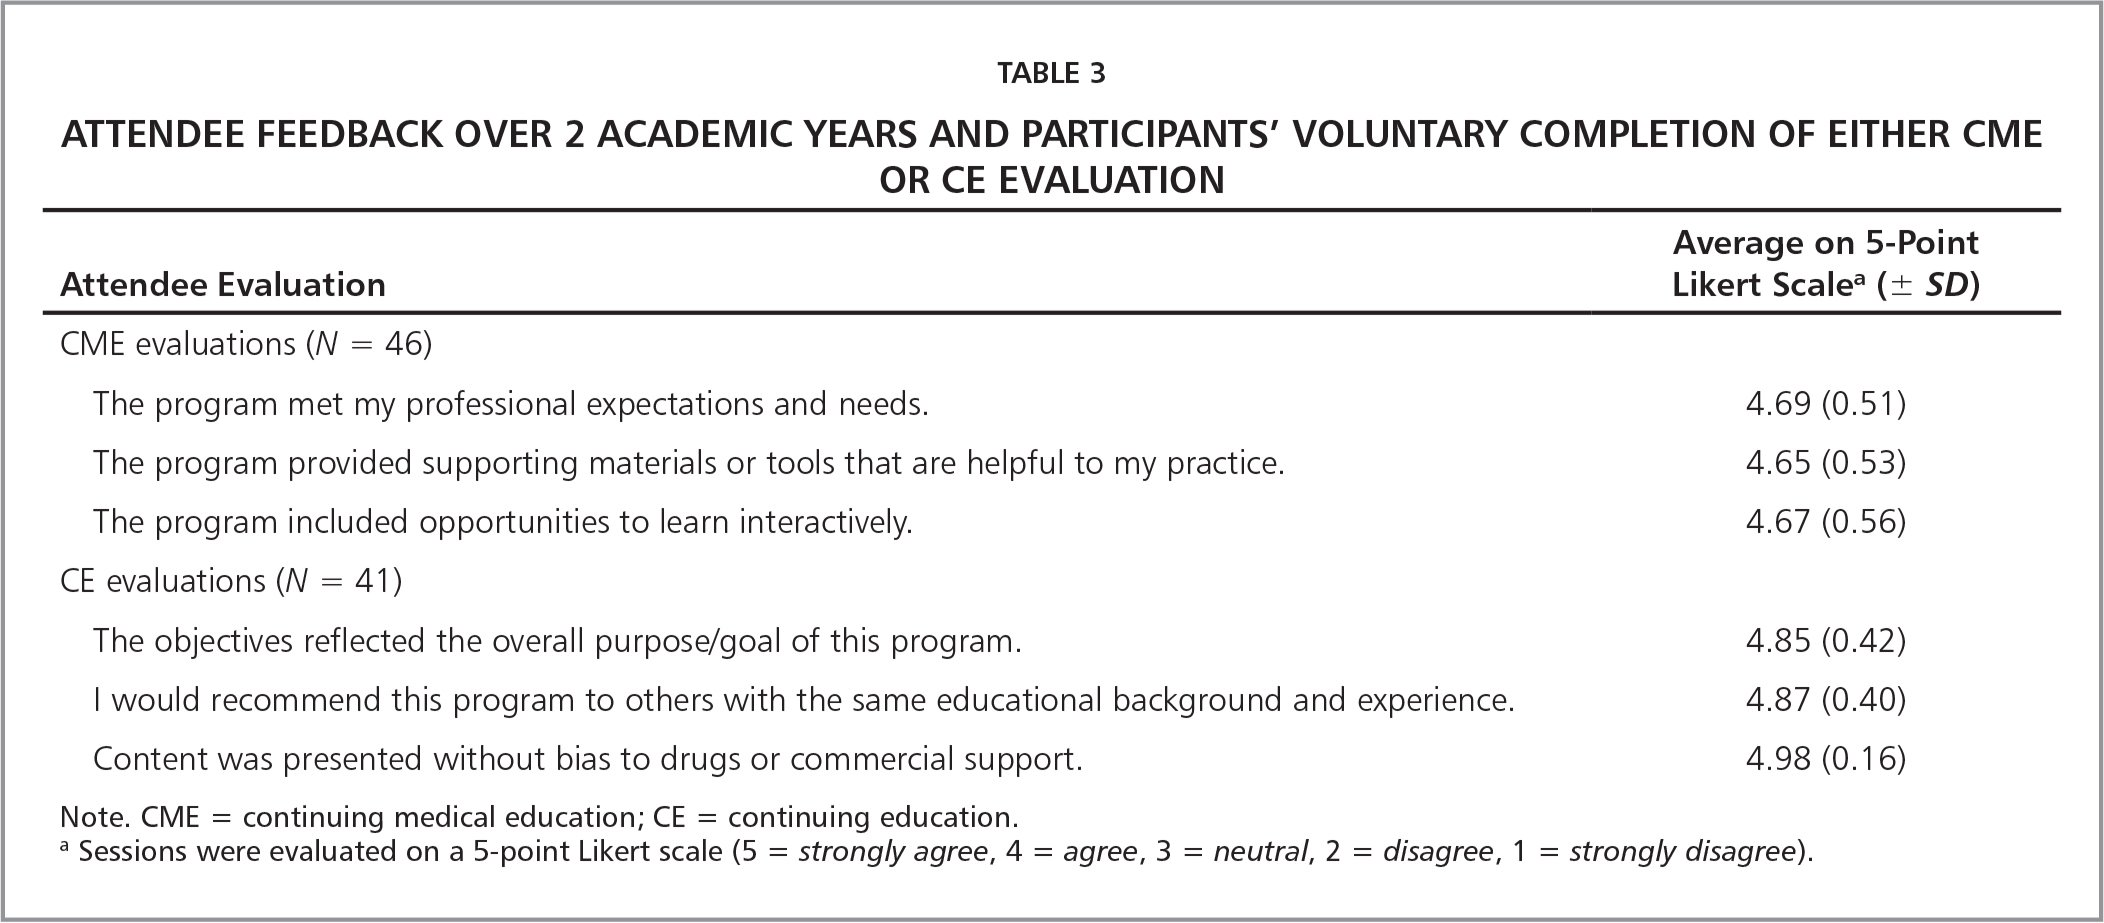 Attendee Feedback Over 2 Academic Years and Participants' Voluntary Completion of Either CME or CE Evaluation